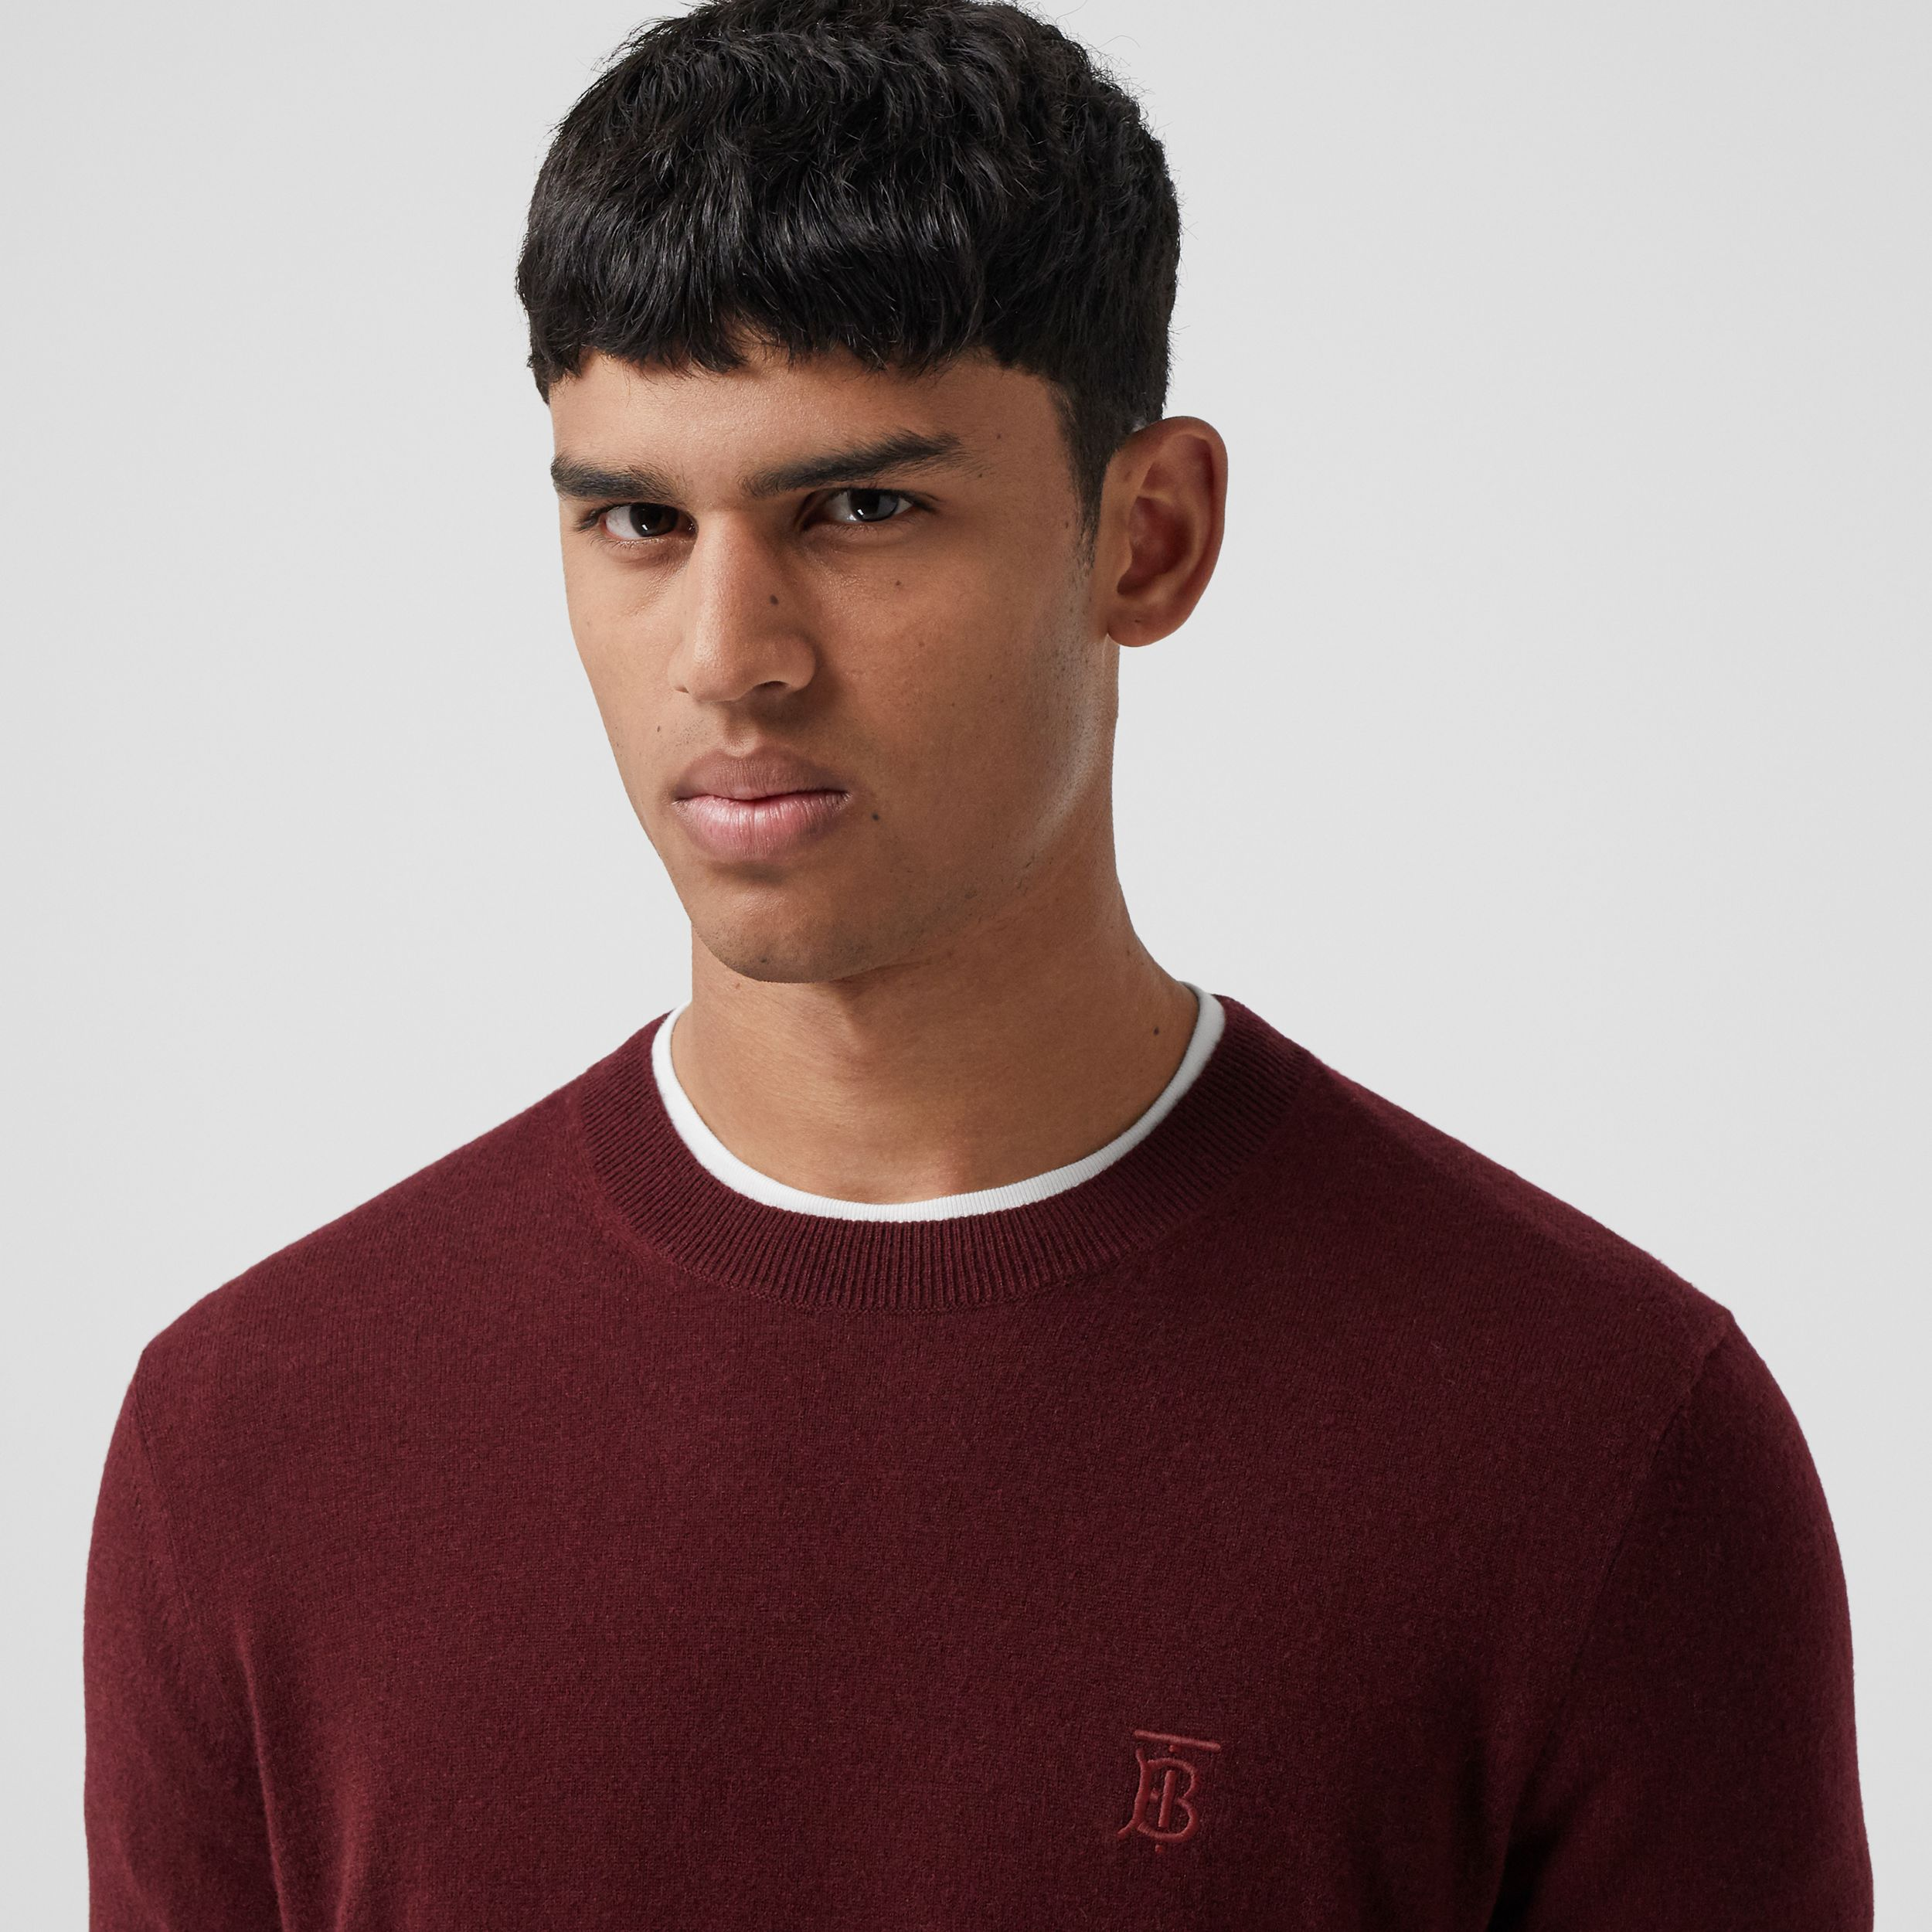 Monogram Motif Cashmere Sweater in Deep Merlot - Men | Burberry - 2